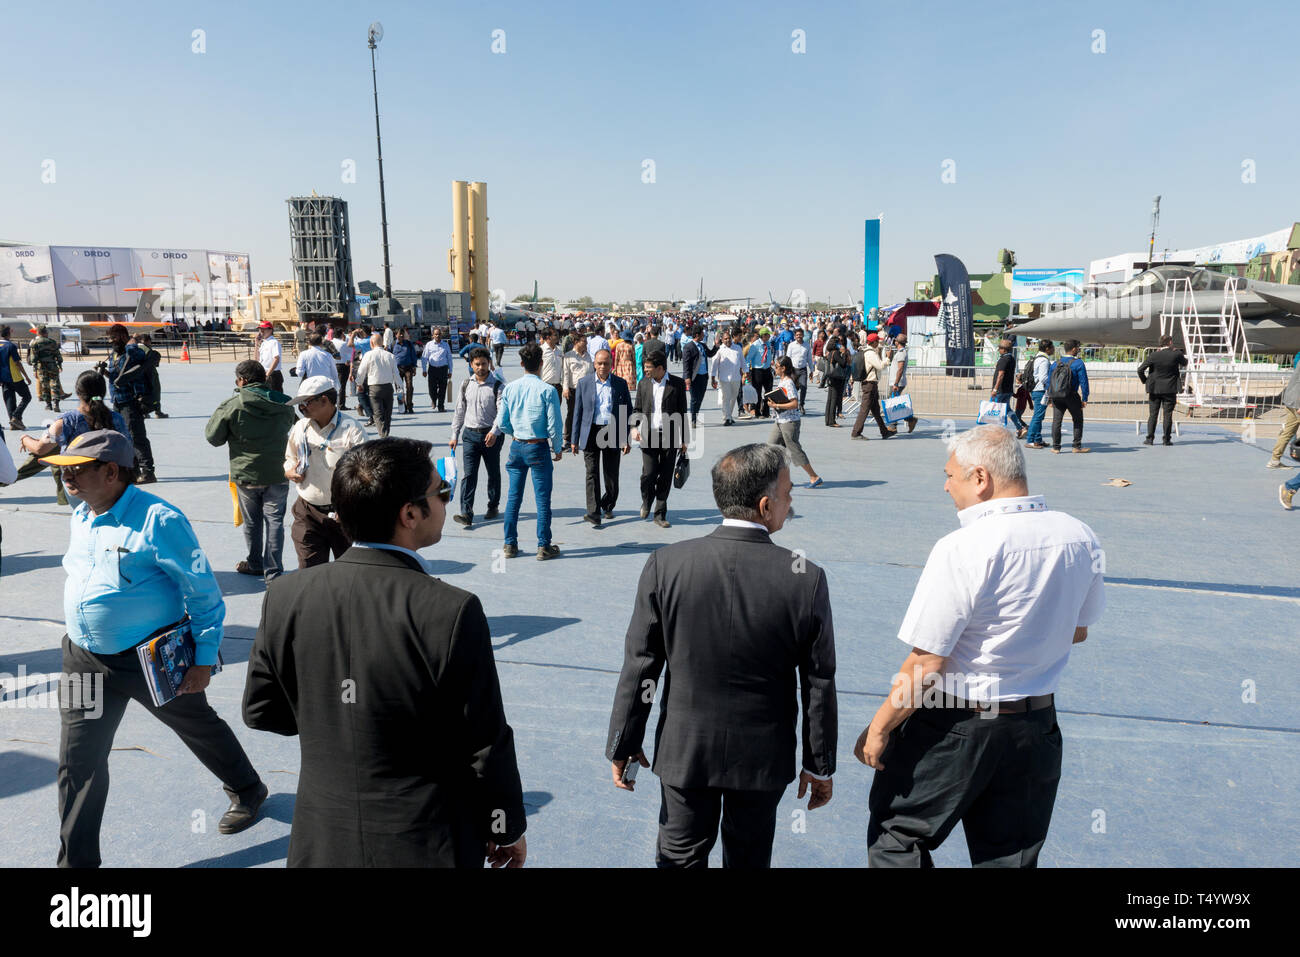 Bengaluru, India - February 22, 2019: Visitors at the Aero India 2019. Aero India is a biennial air show and aviation exhibition. - Stock Image